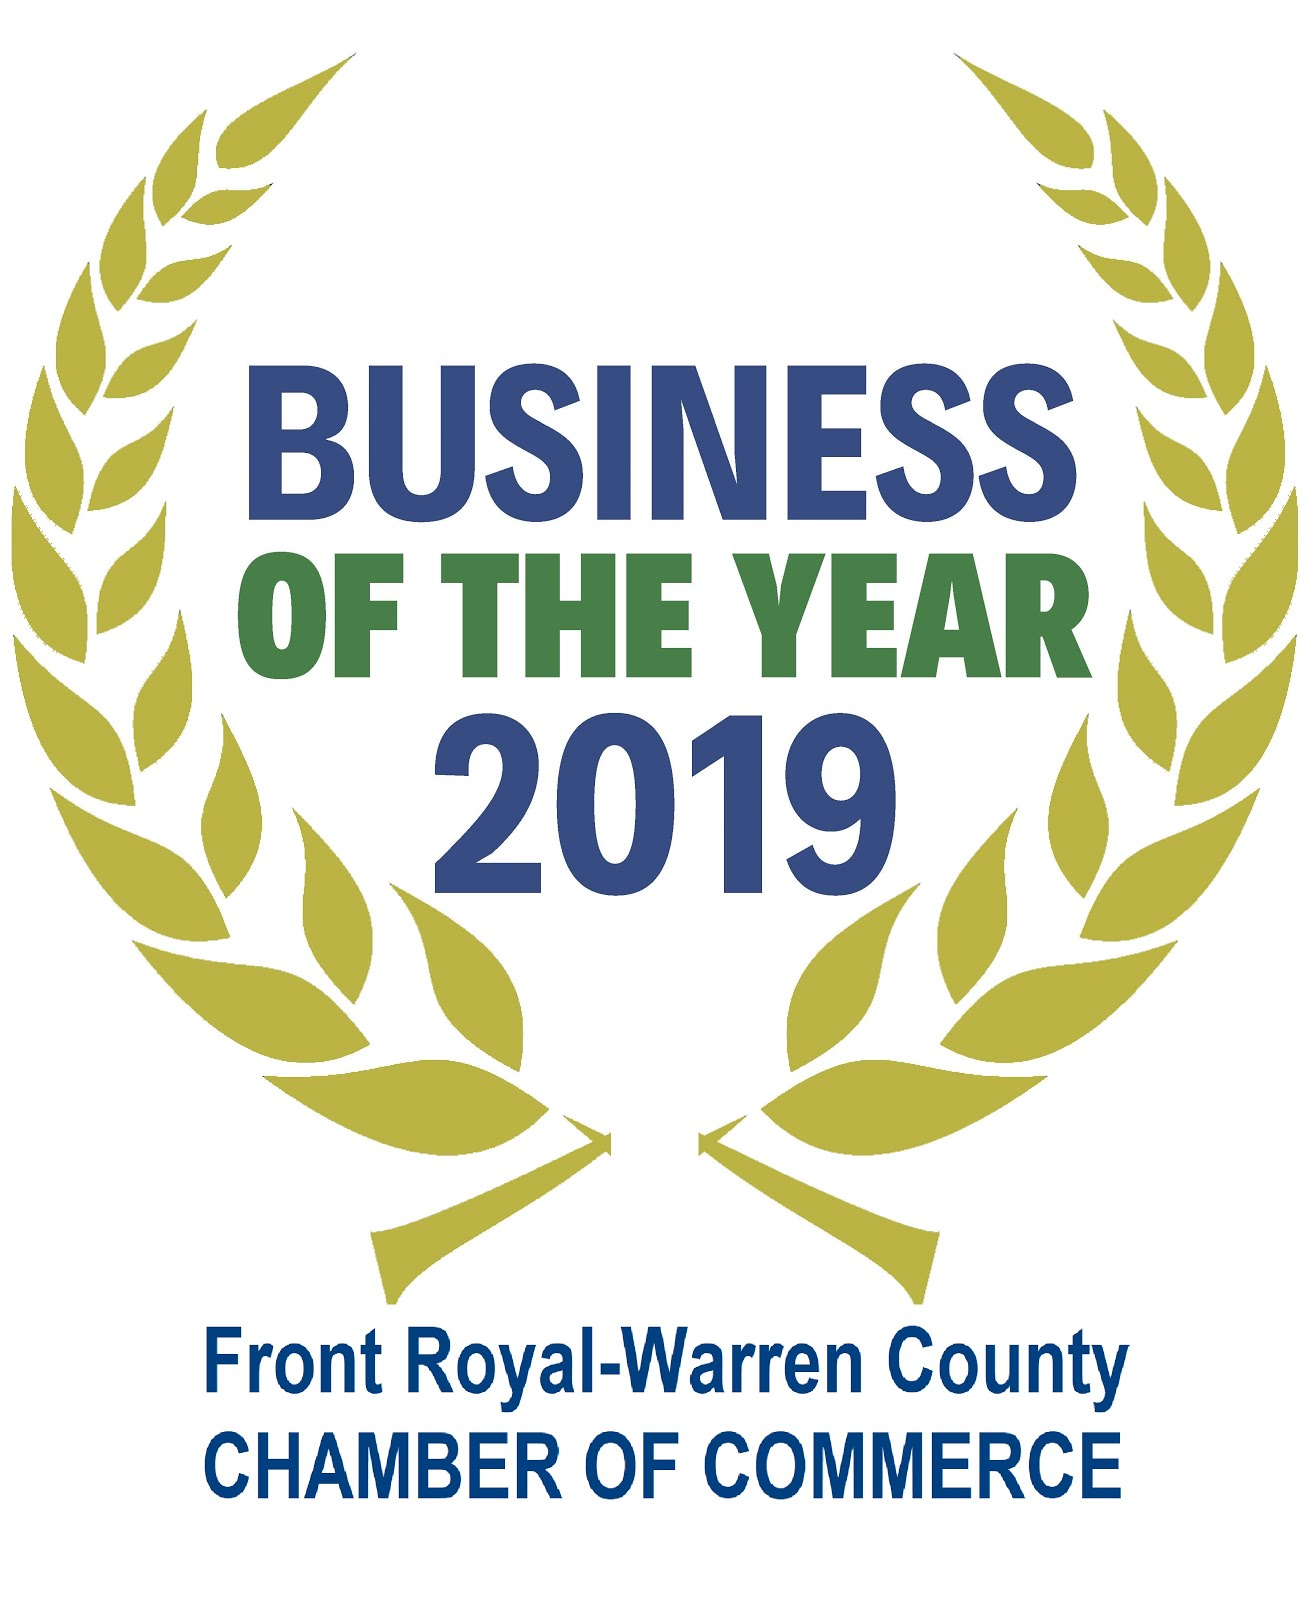 2019 Business of the Year - Front Royal/Warren County Chamber of Commerce